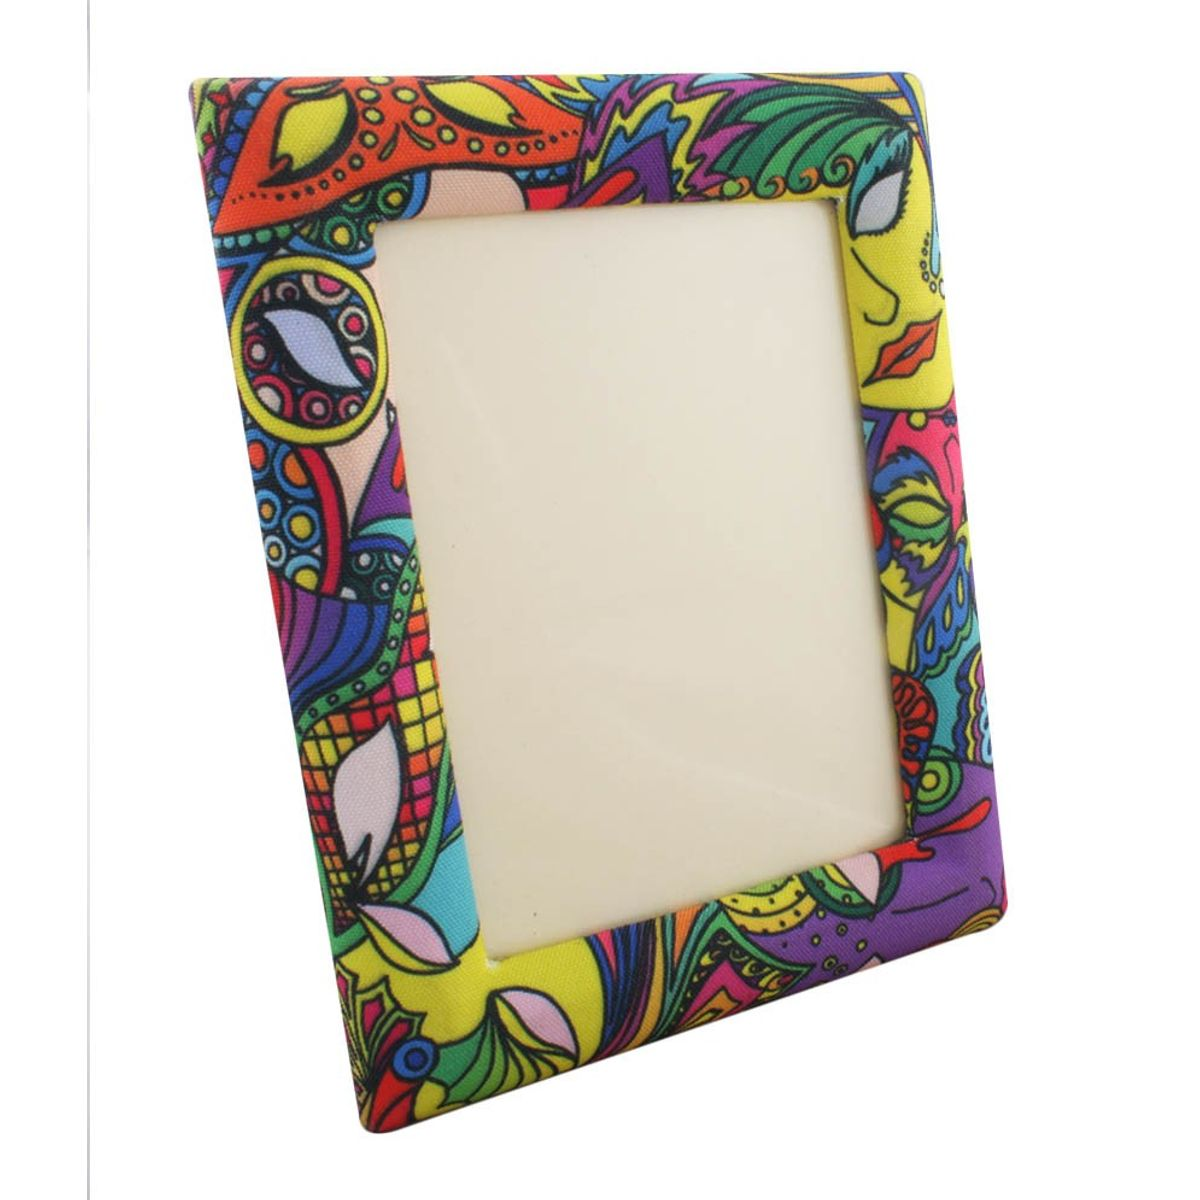 Mardi Gras photo frame